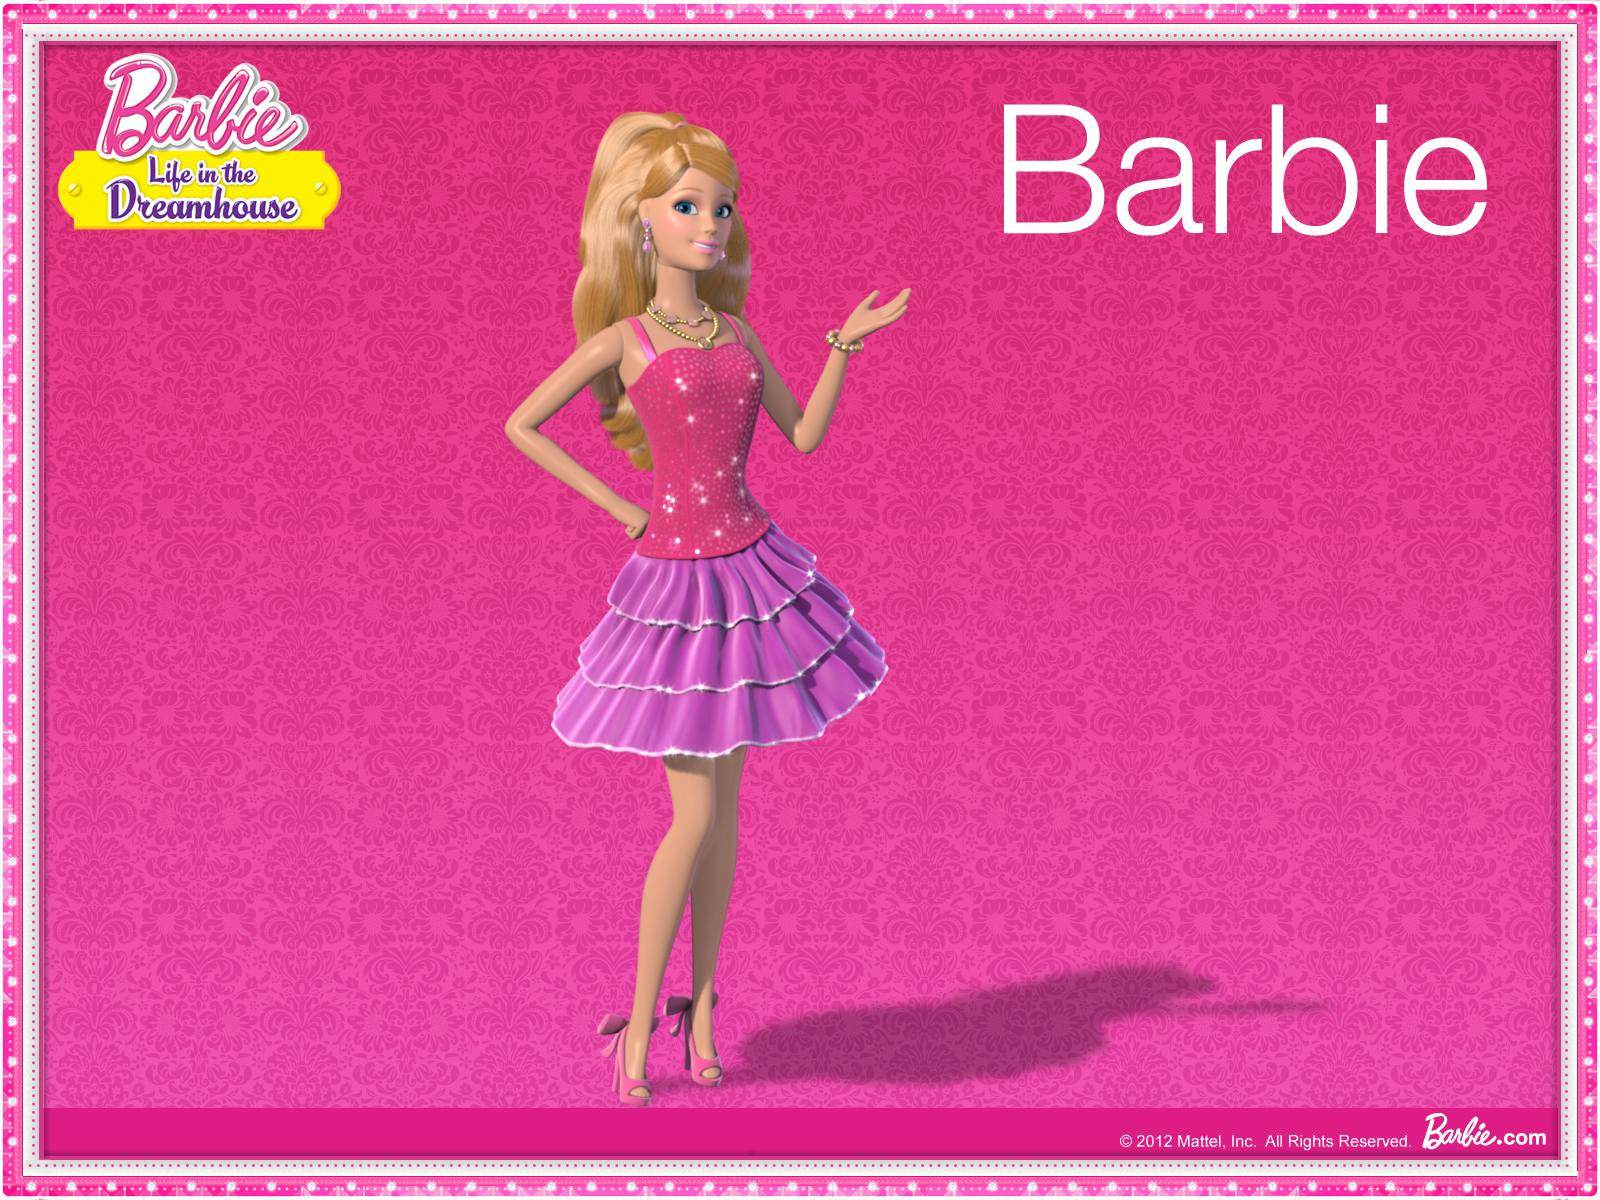 Jessowey 39 s fave barbie and disney picks images barbie life in the dream h - Maison de reve barbie ...